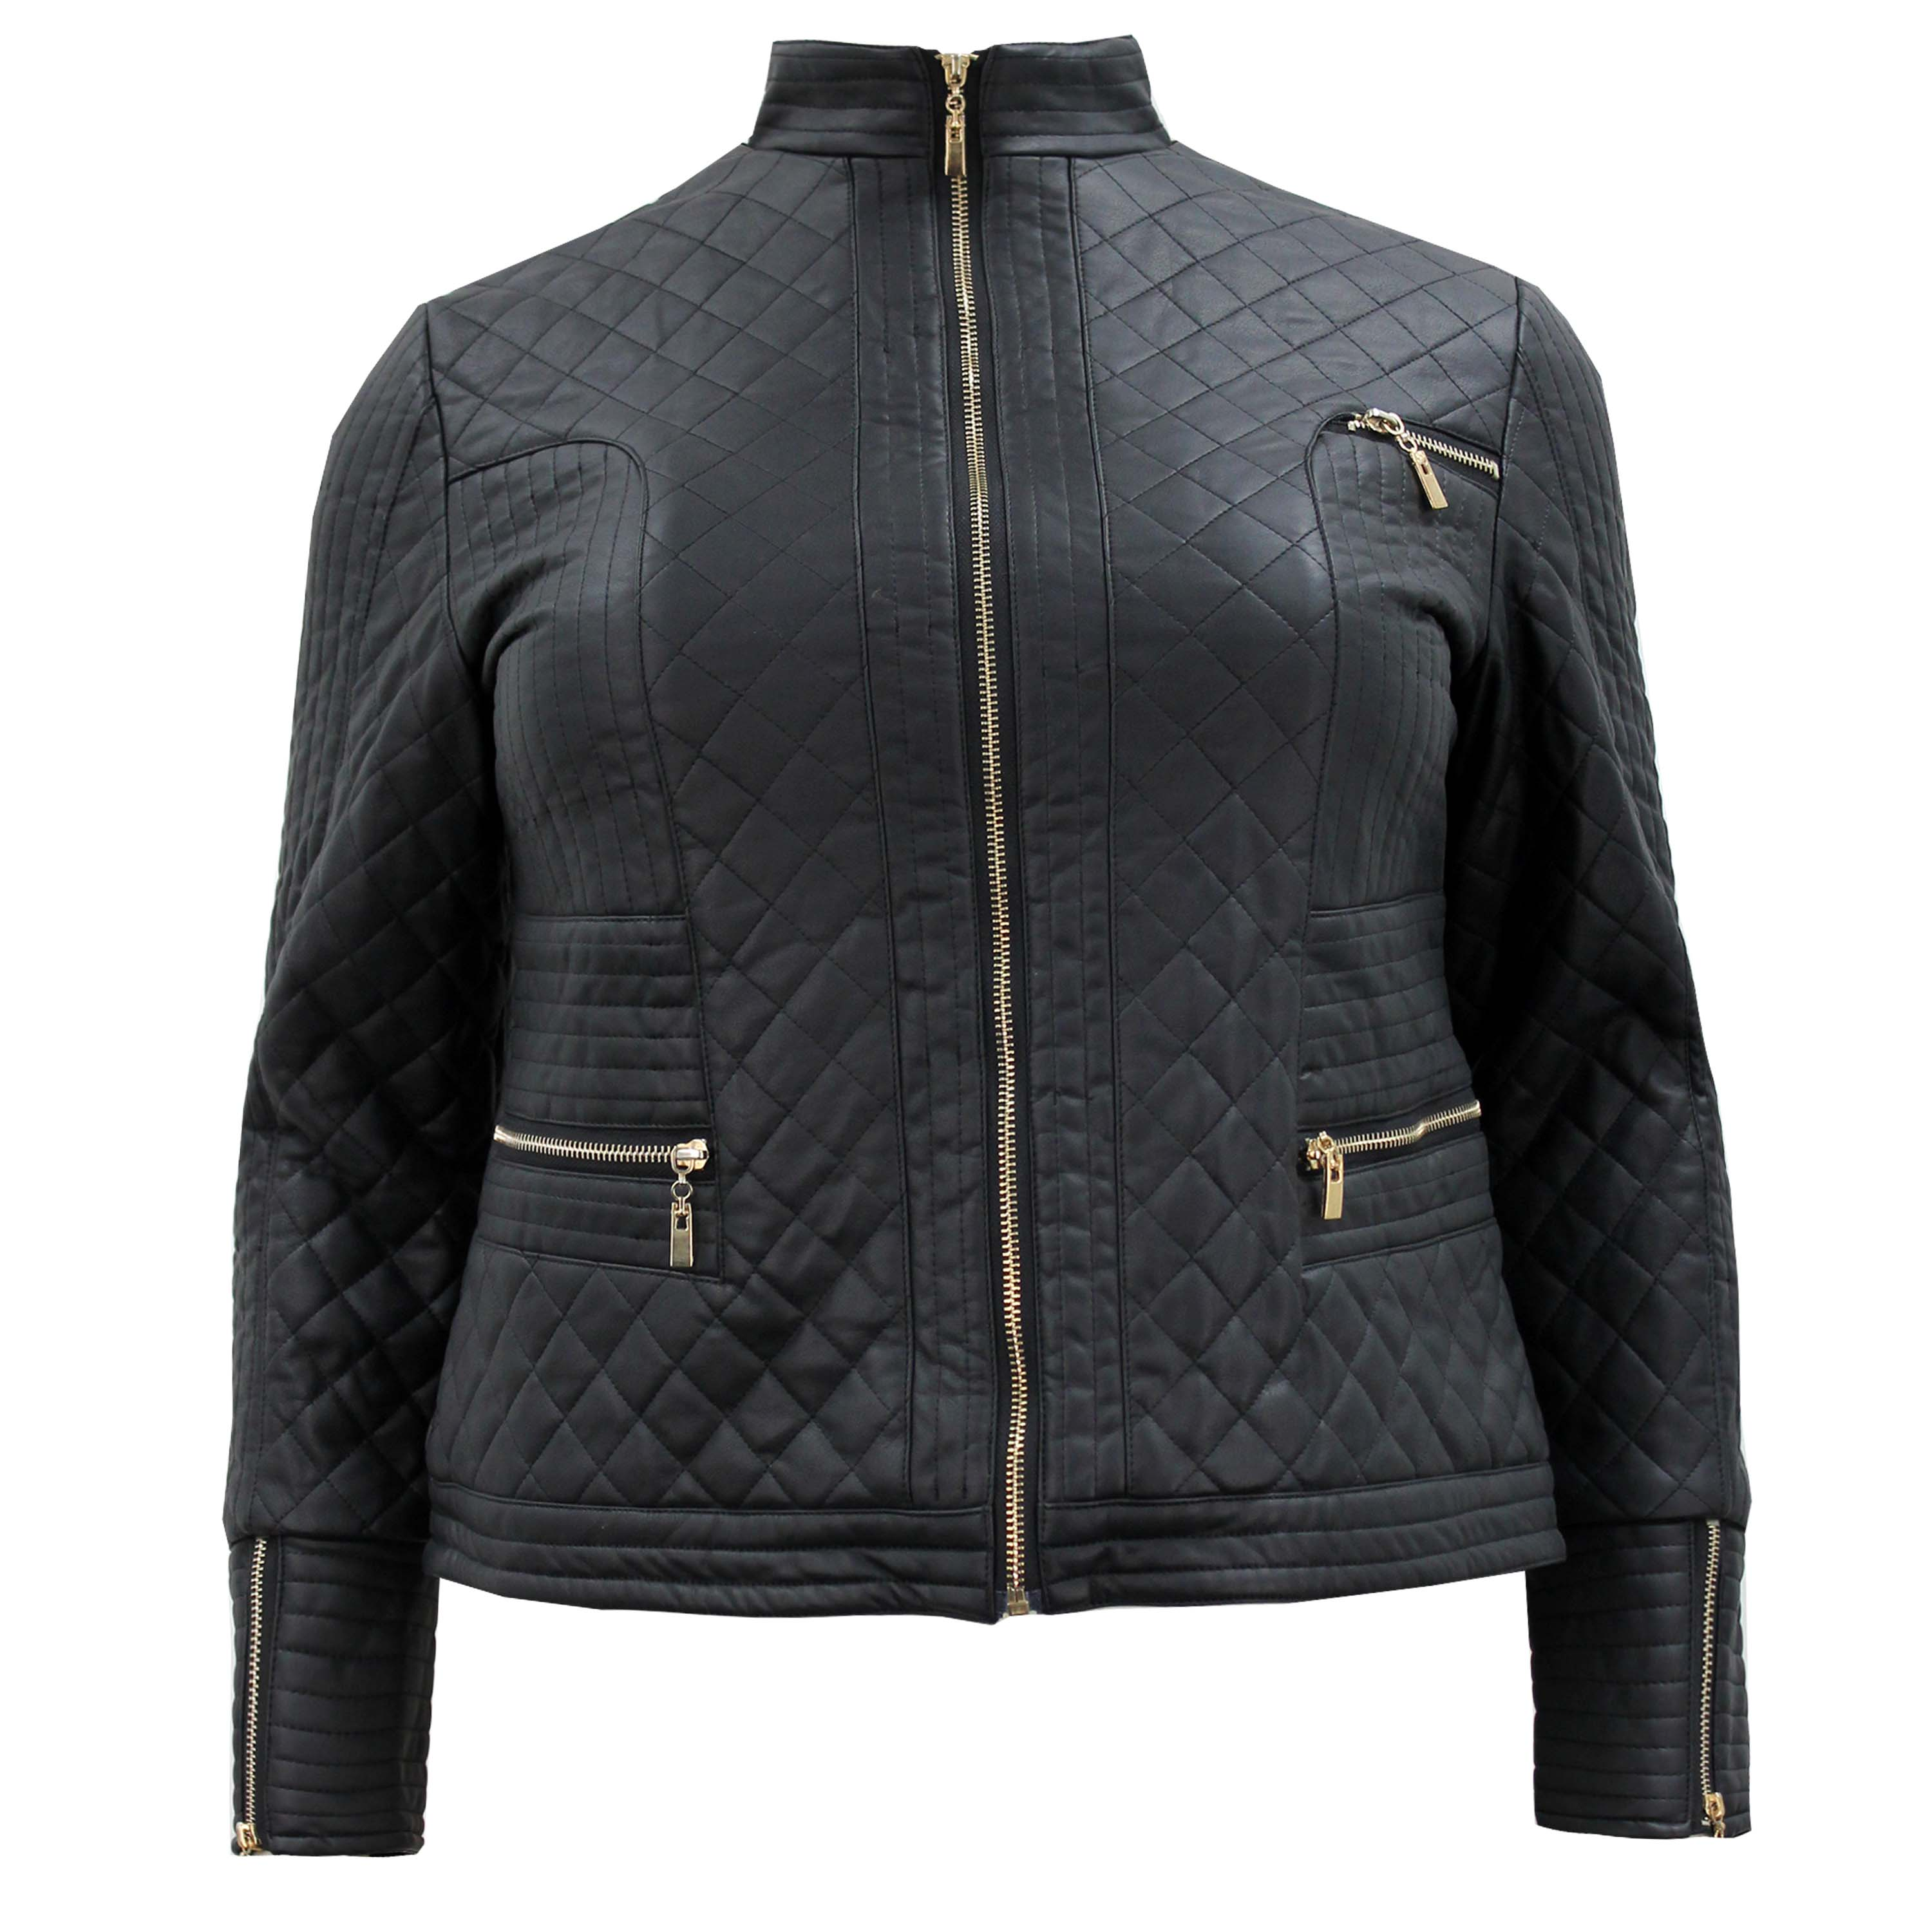 Plus size womens leather motorcycle jackets